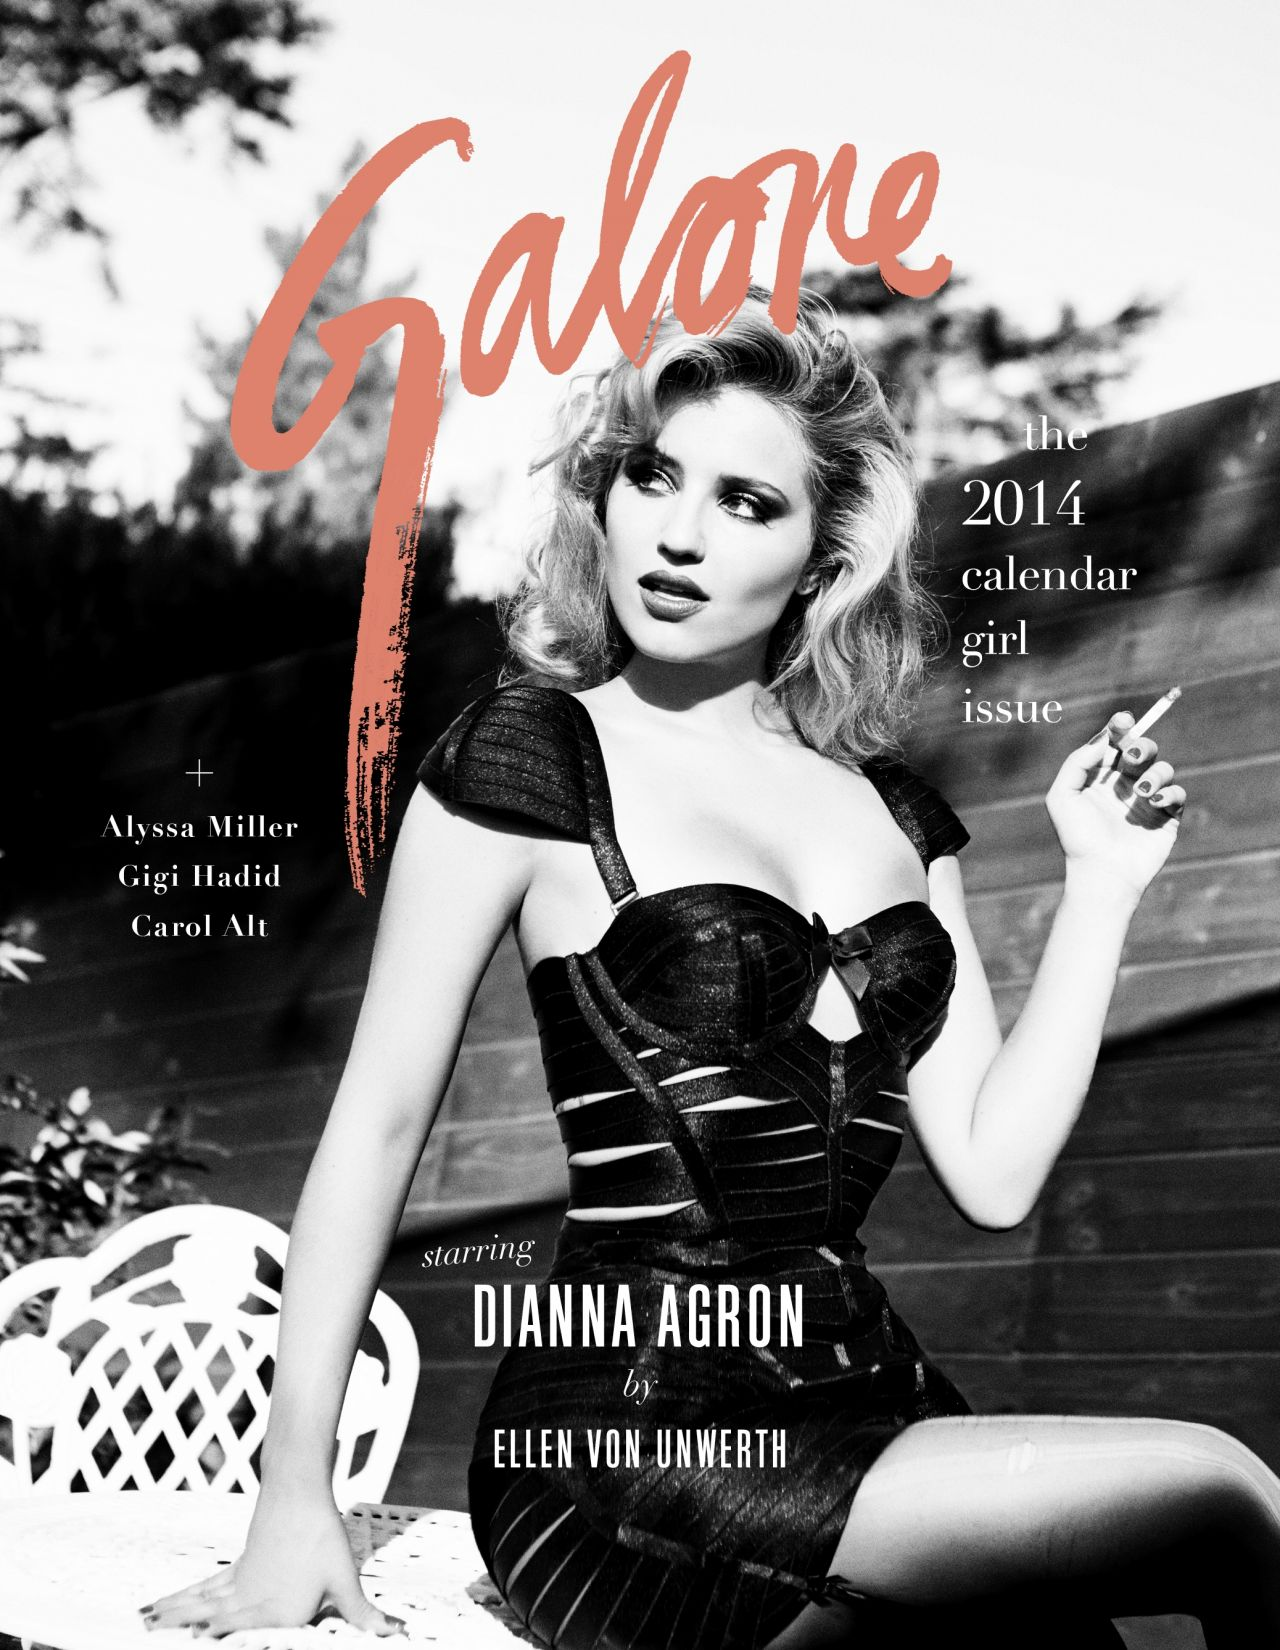 Dianna Agron - Sexy Photoshoot For GALORE Magazine